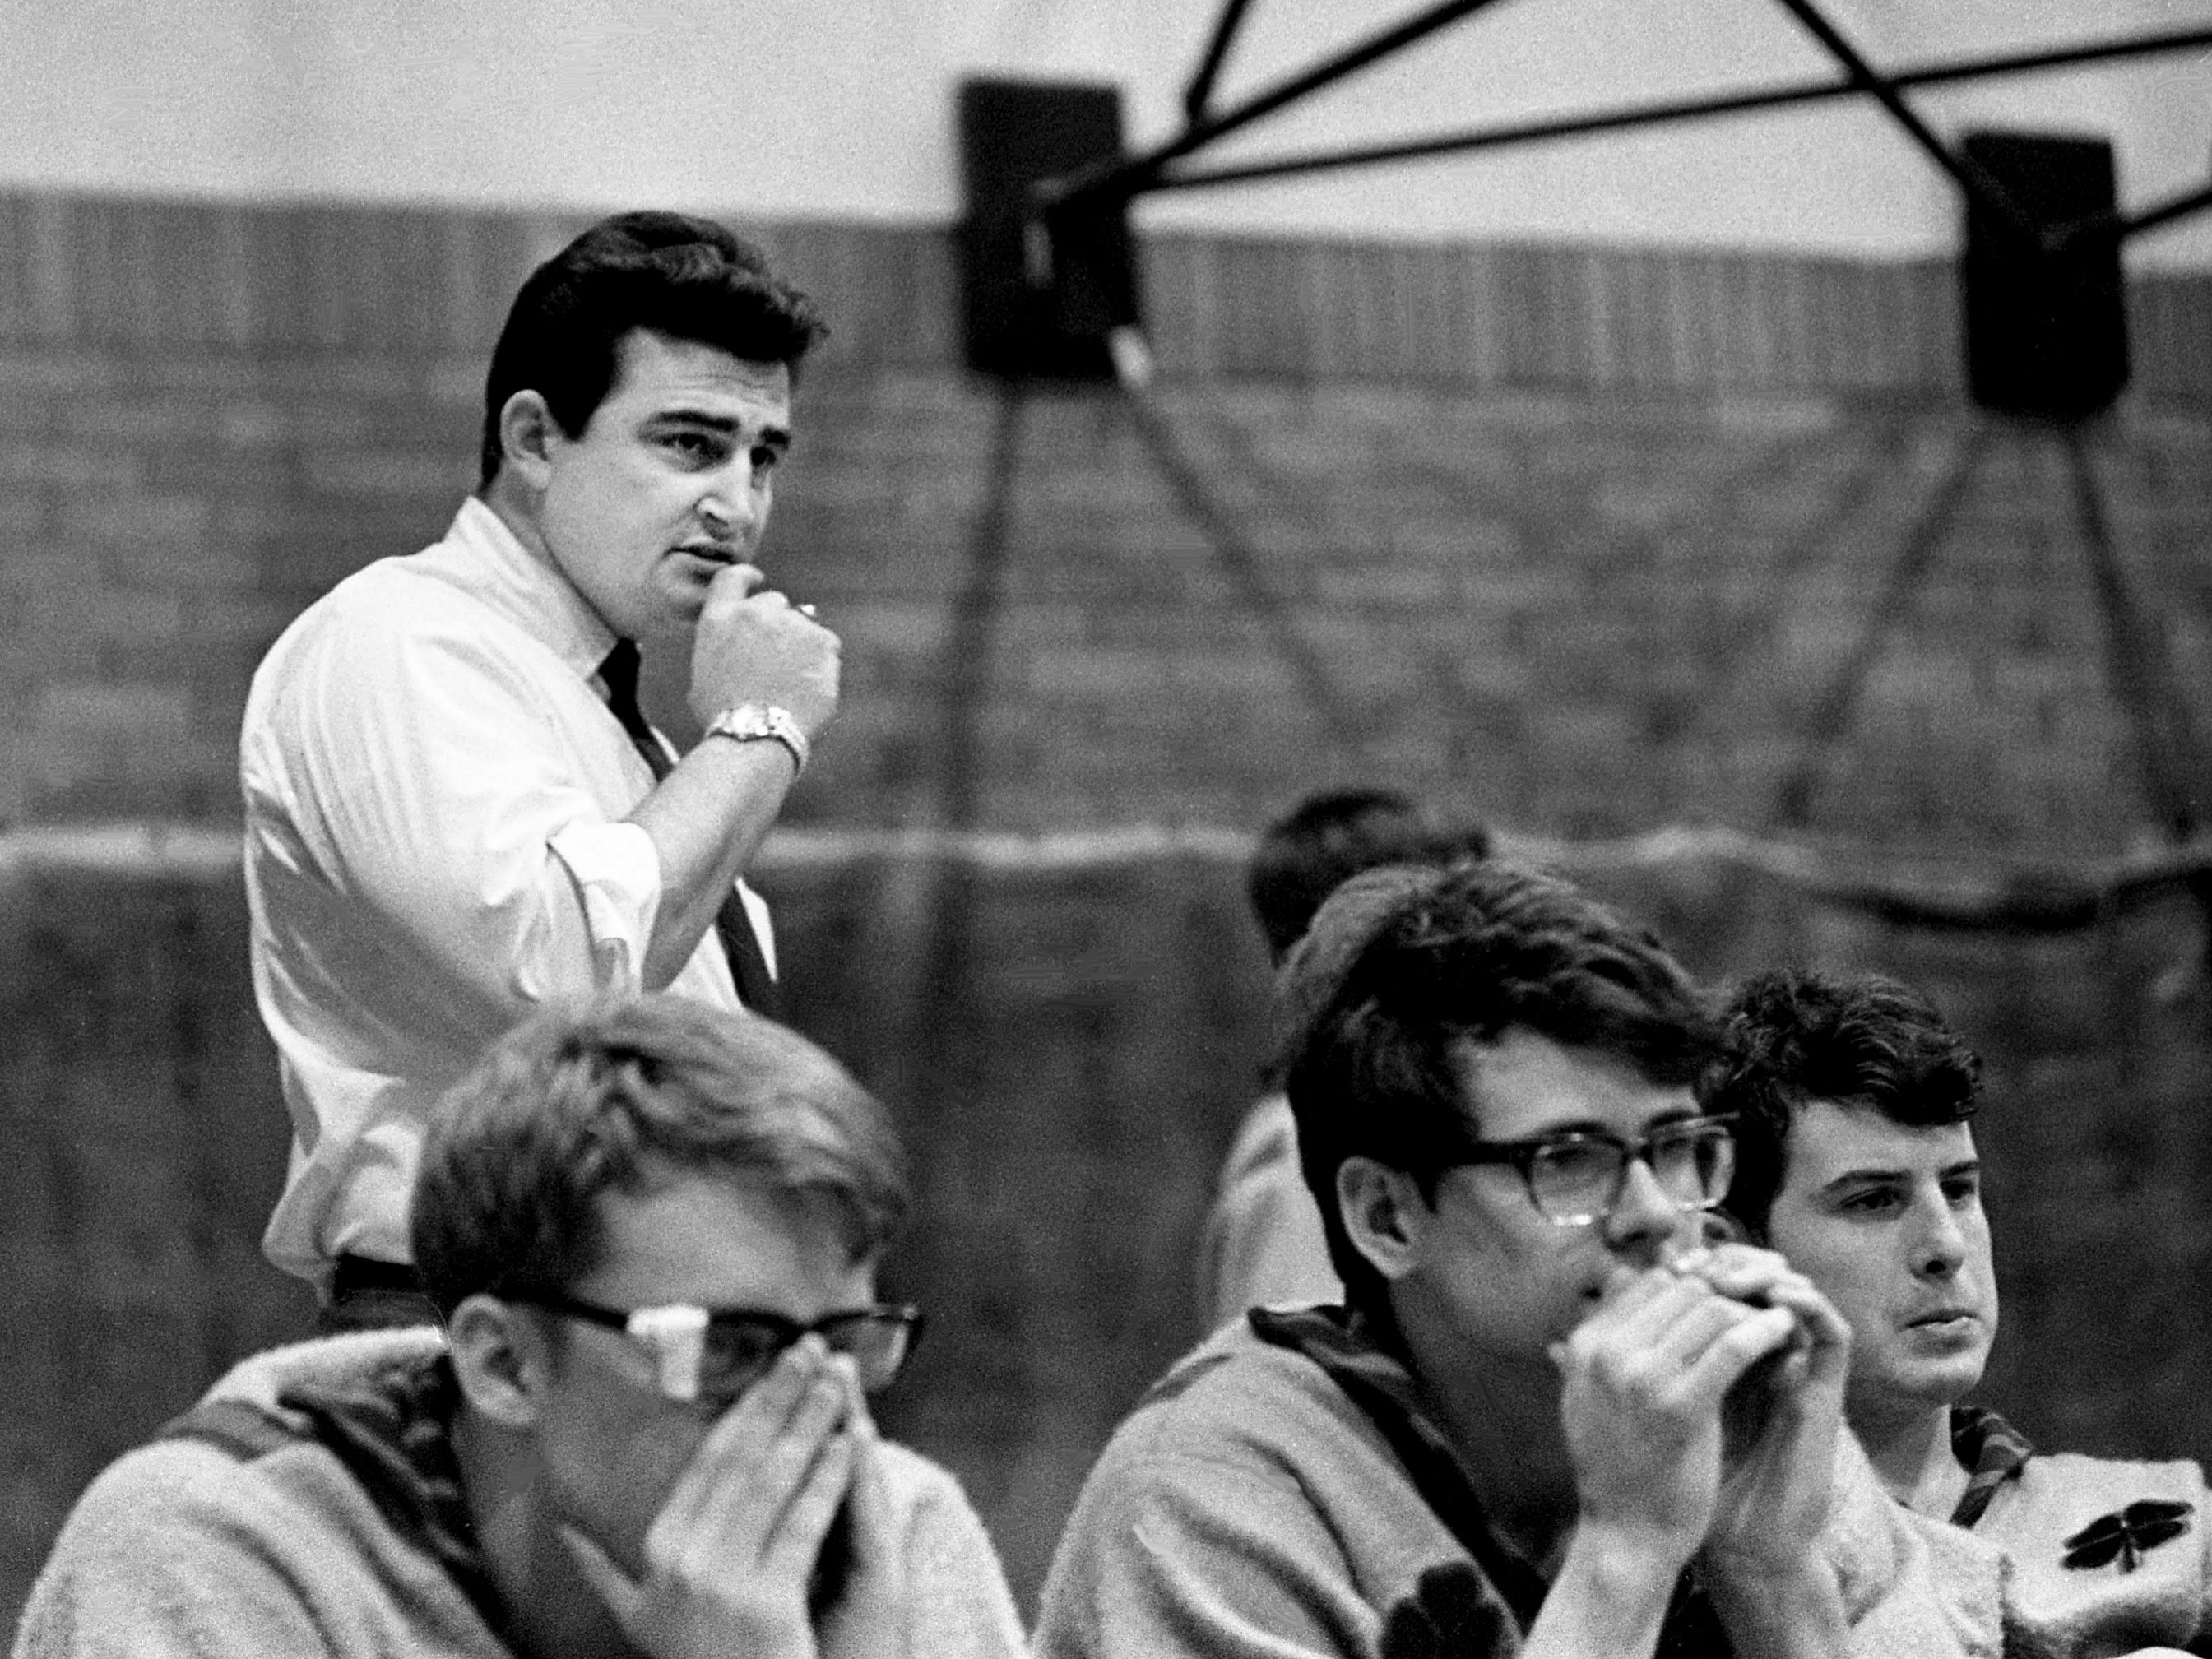 Father Ryan head wrestling coach Joe Drennan, back, keeps his eyes on one of his wrestlers during their 28-12 victory over MBA to capture the NIL and AA-Western titles at home Jan. 30, 1969.